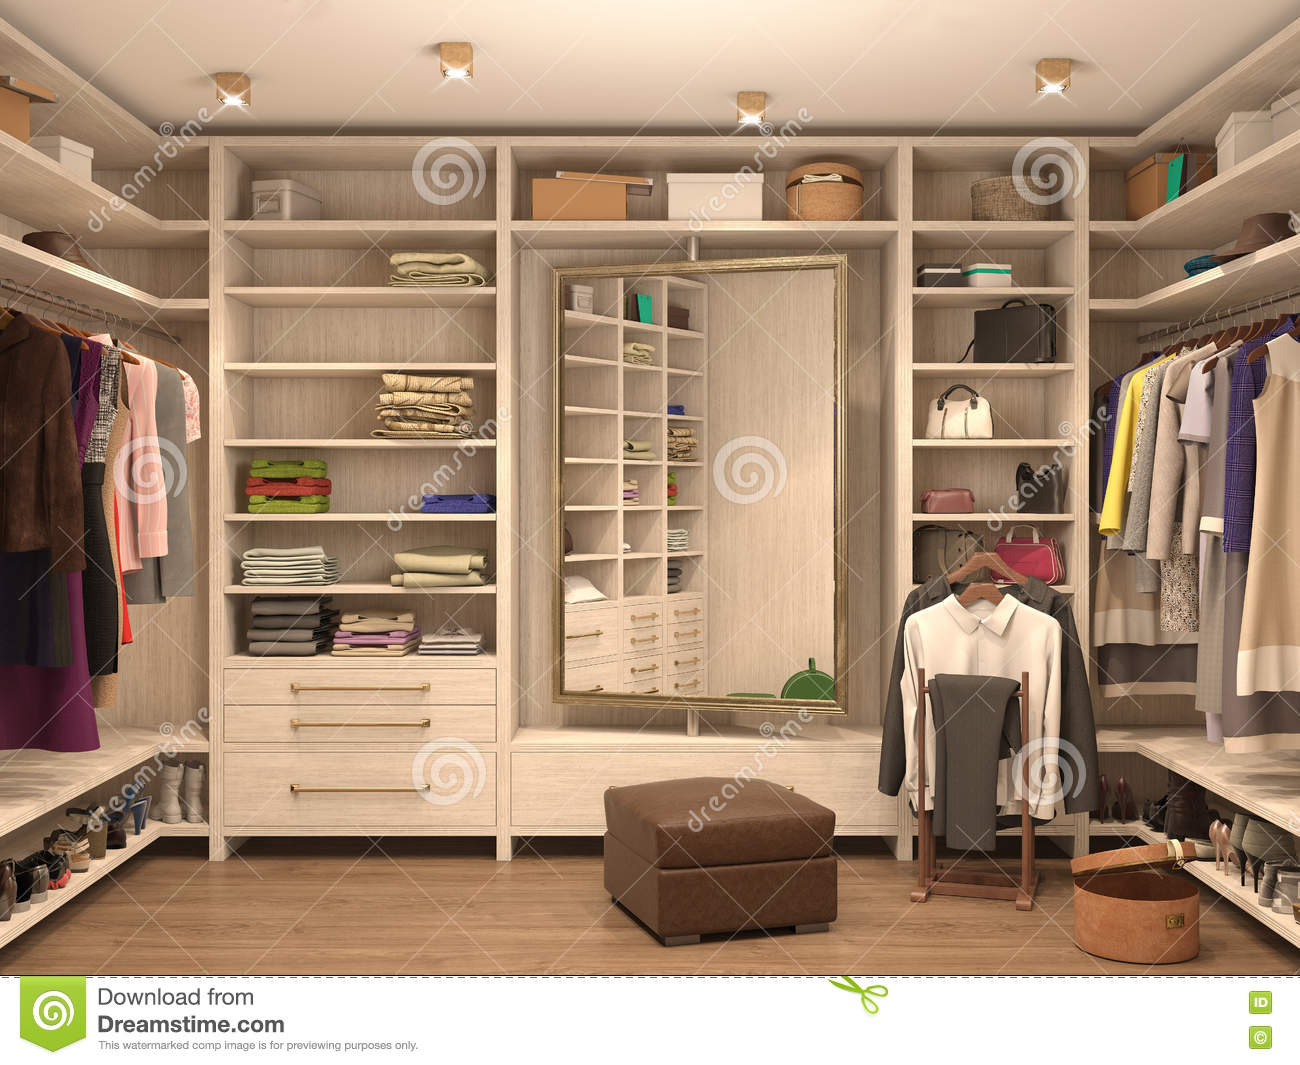 White dressing room interior of a modern house stock for Dressing room interior